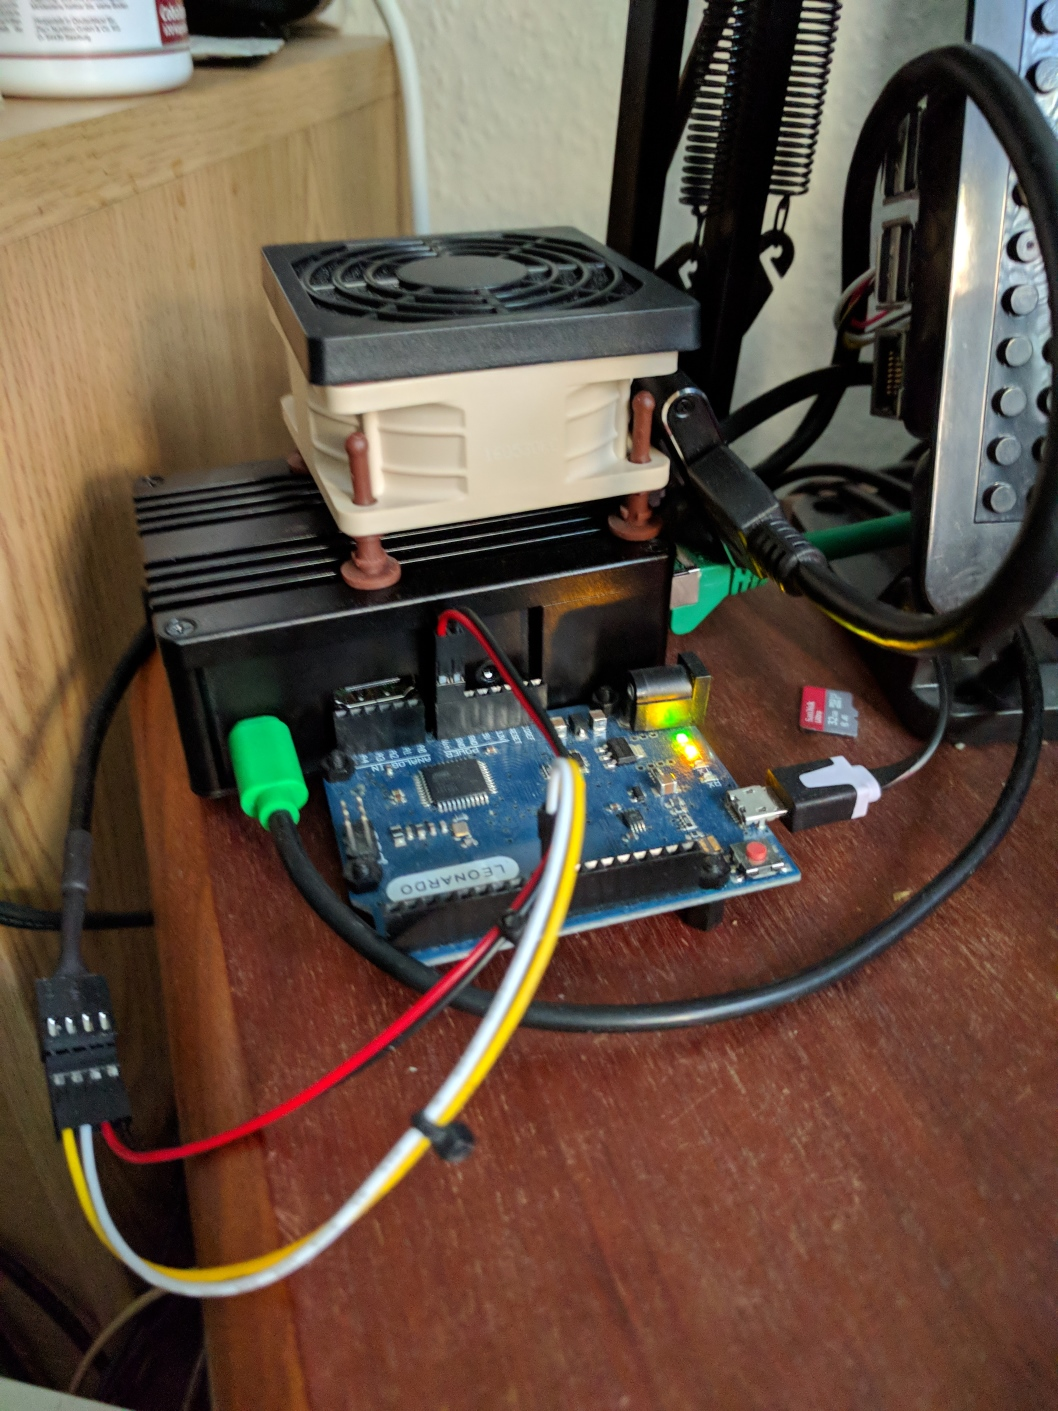 hight resolution of leonardo controlled 25khz pwm fan leonardo controlled 25khz pwm fan jpg1058 1411 630 kb